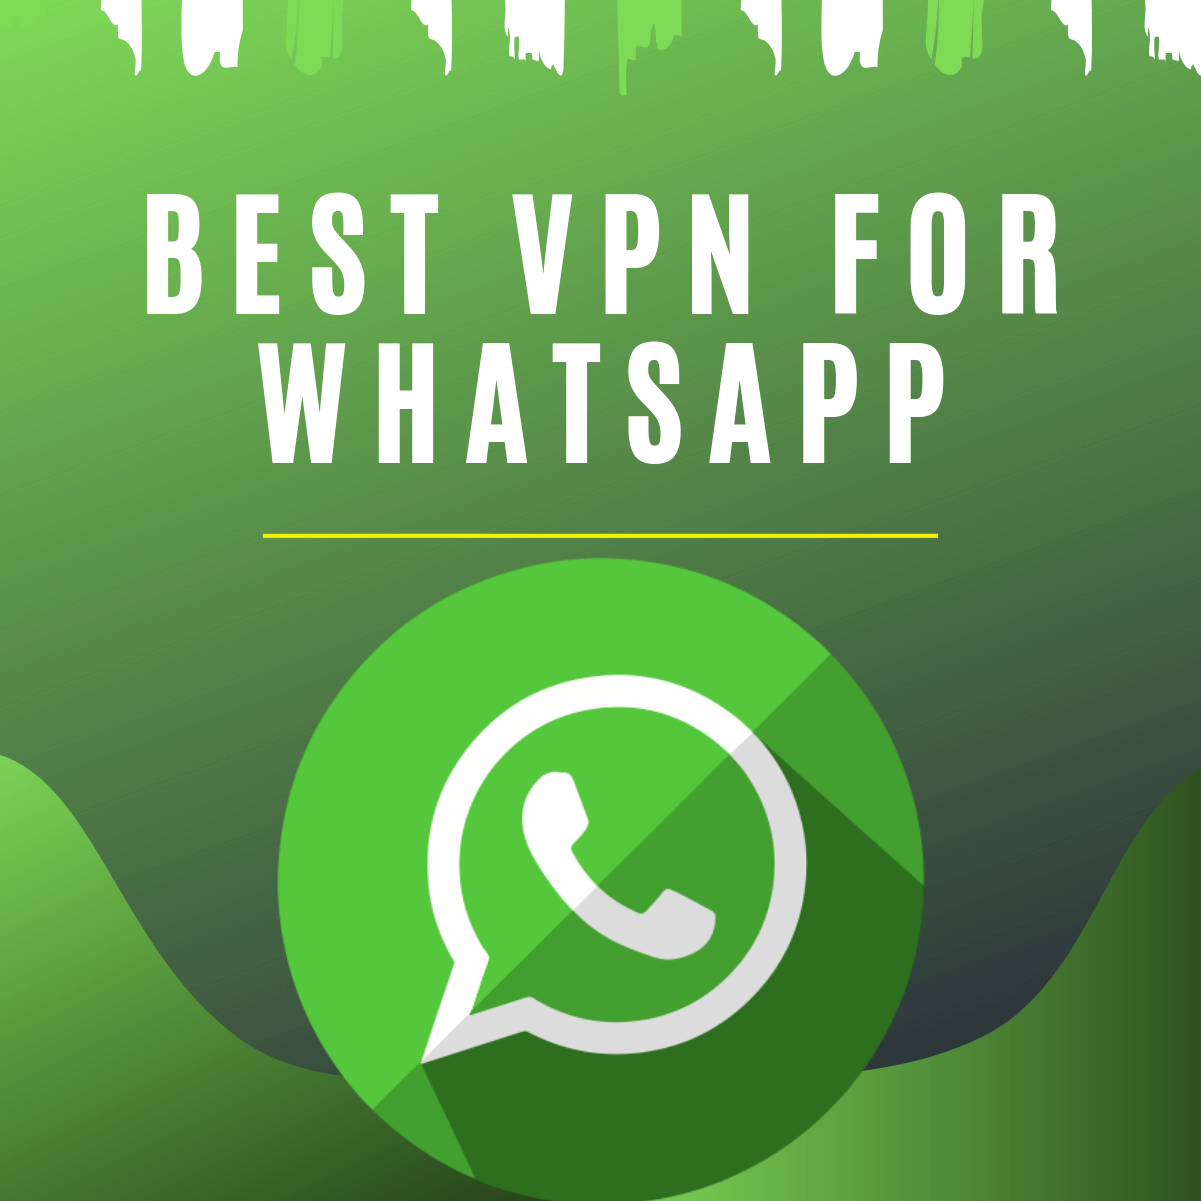 Best VPN for WhatsApp 2019 - Unblock WhatsApp Anywhere In The World